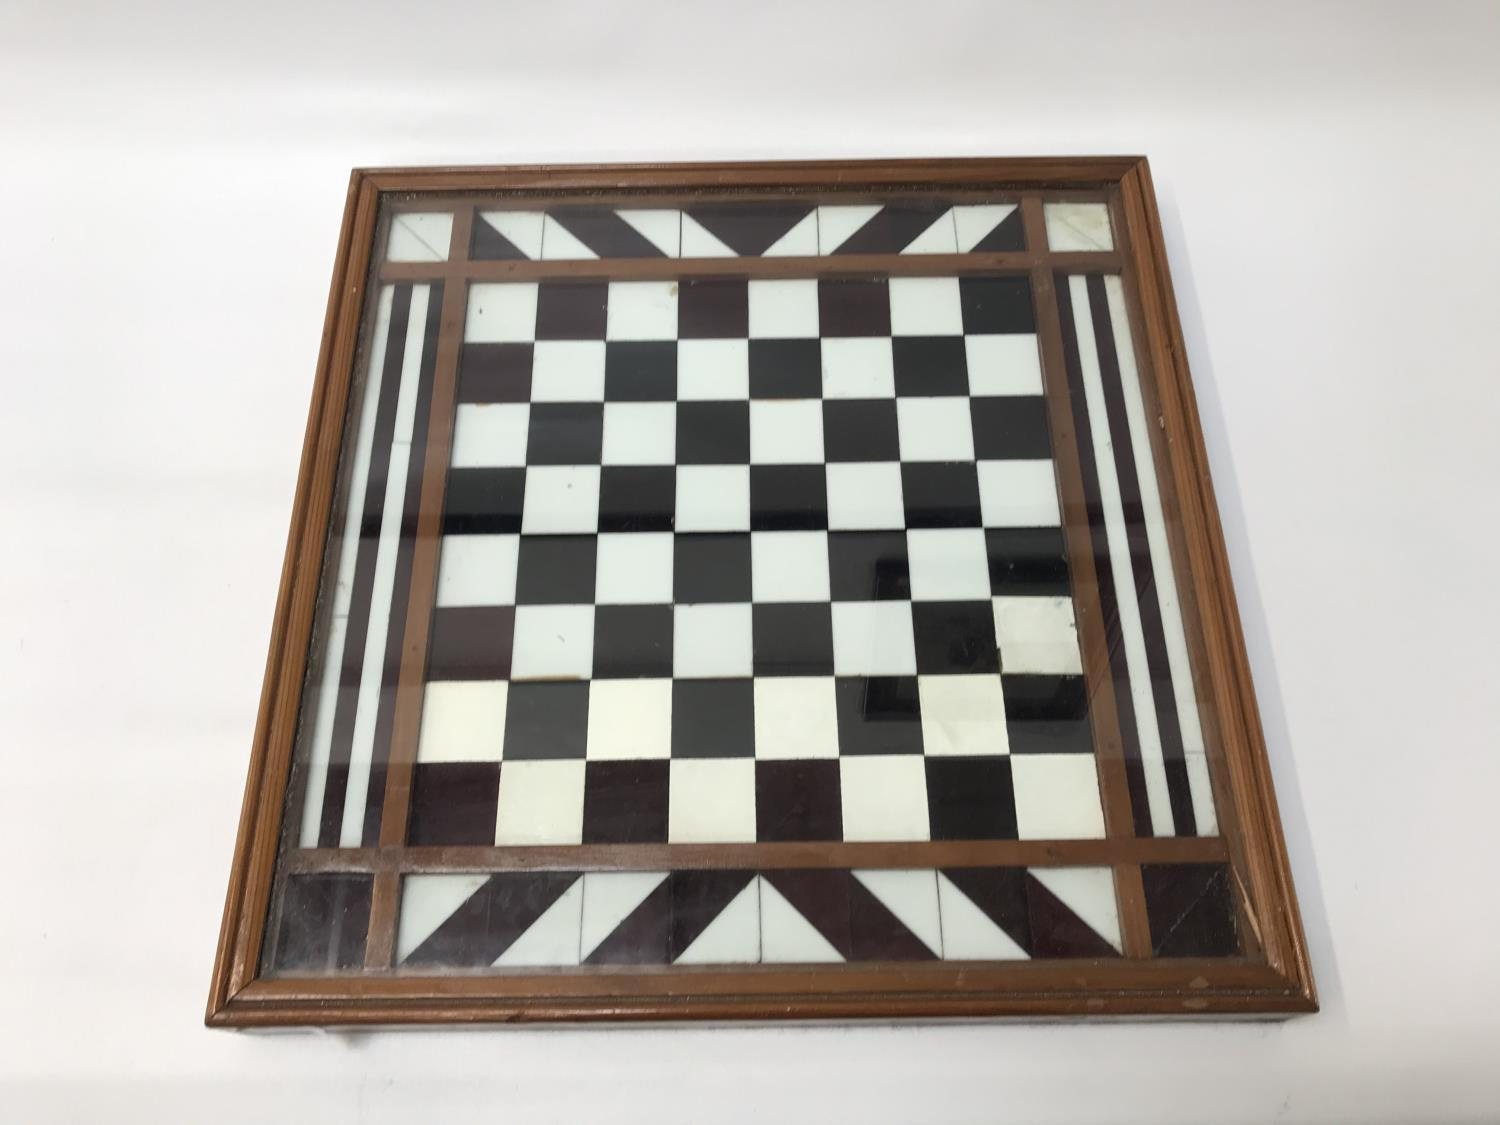 Lot 252 - TABLE TOP CHESS BOARD in a mahogany frame under glass, 45.5cm x 45.5cm